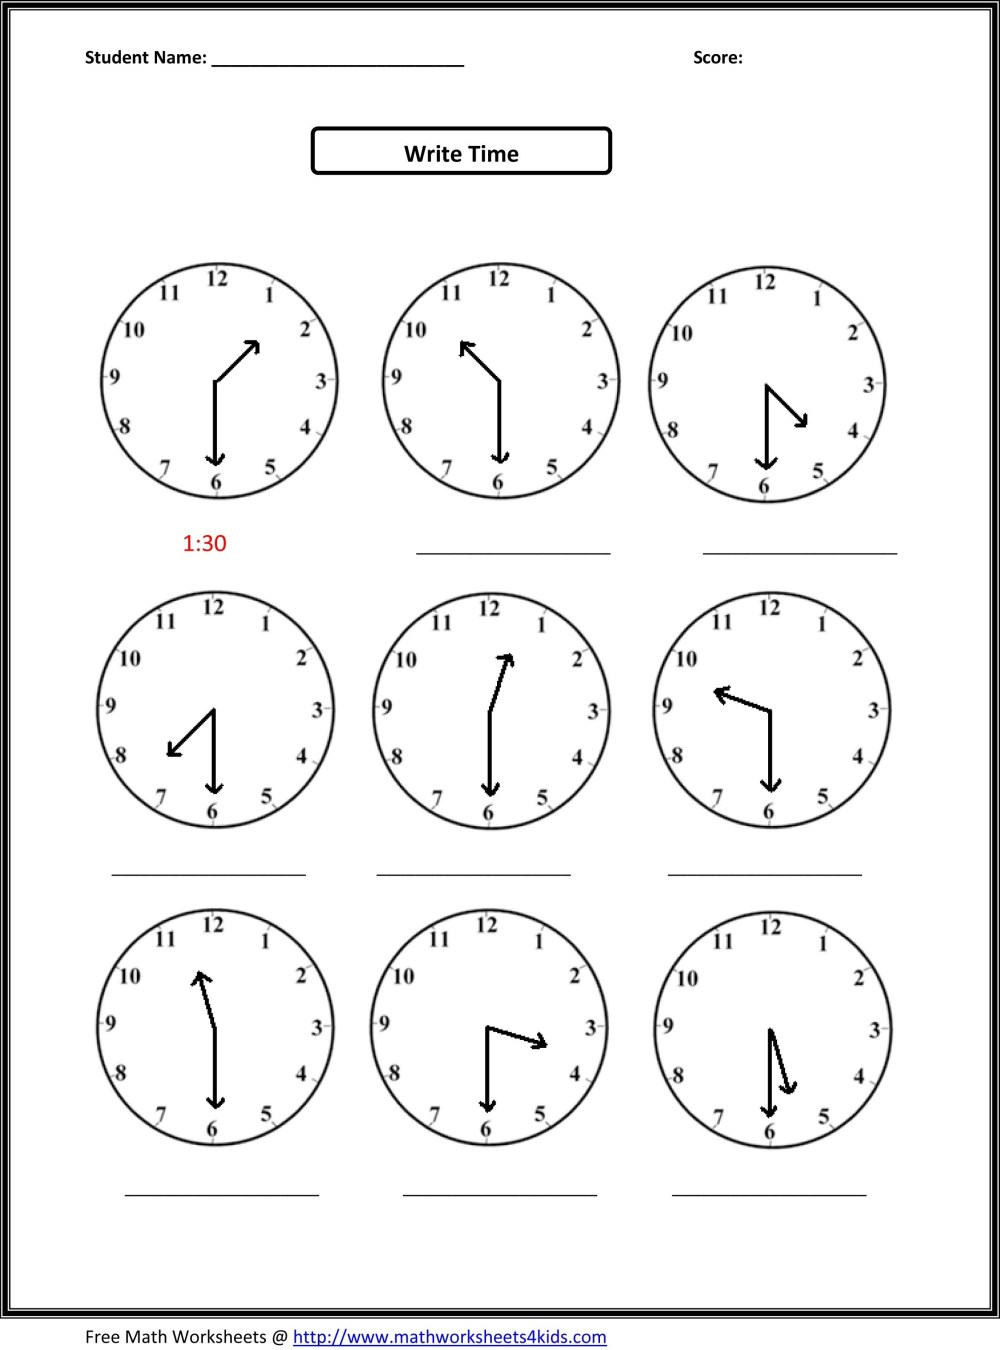 medium resolution of Free Measurement Worksheets   Printable Worksheets and Activities for  Teachers